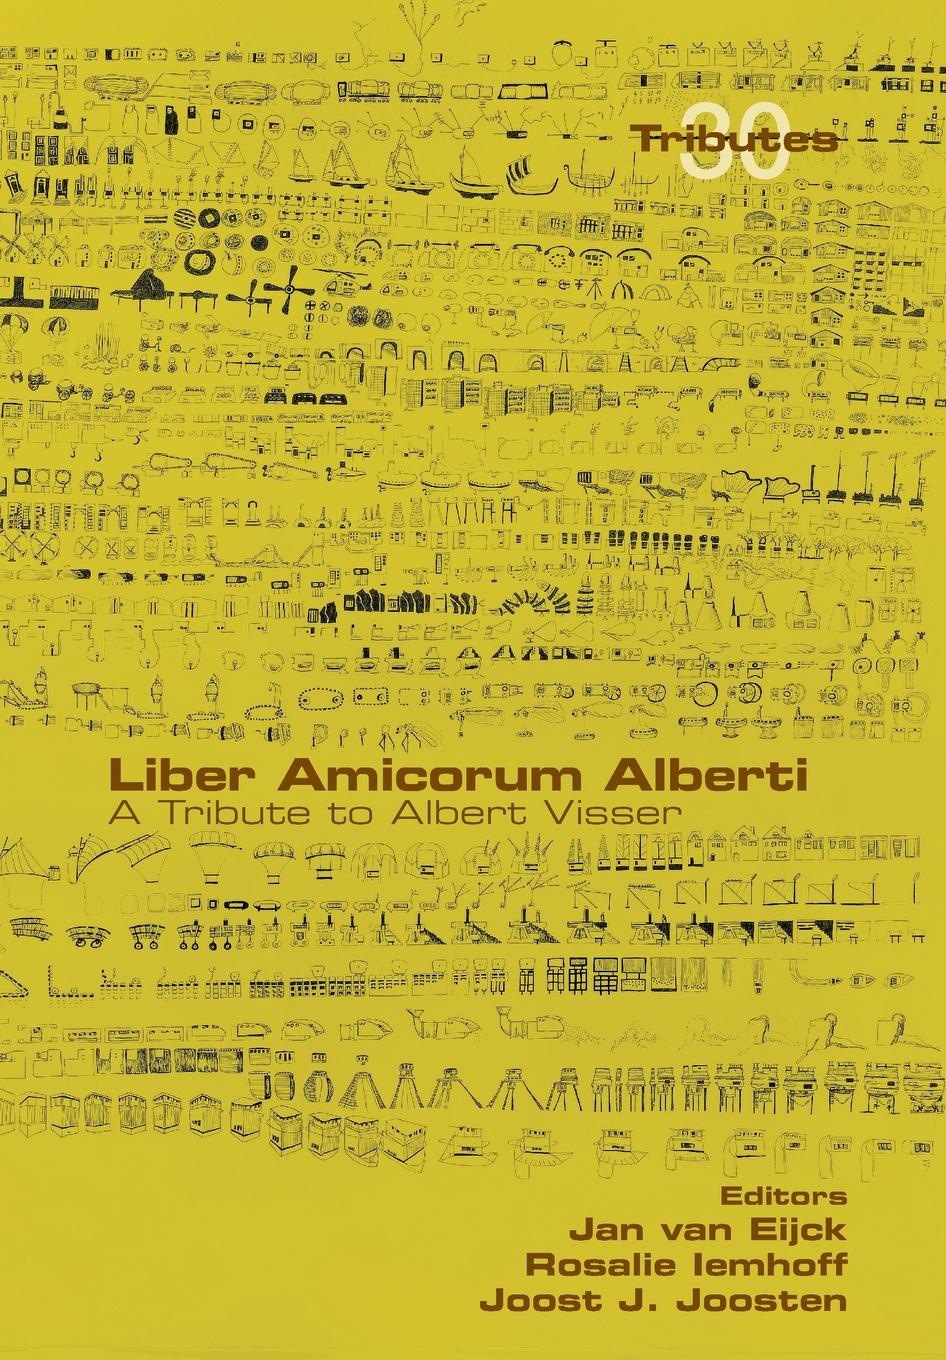 Liber Amicorum Alberti. A Tribute to Albert Visser